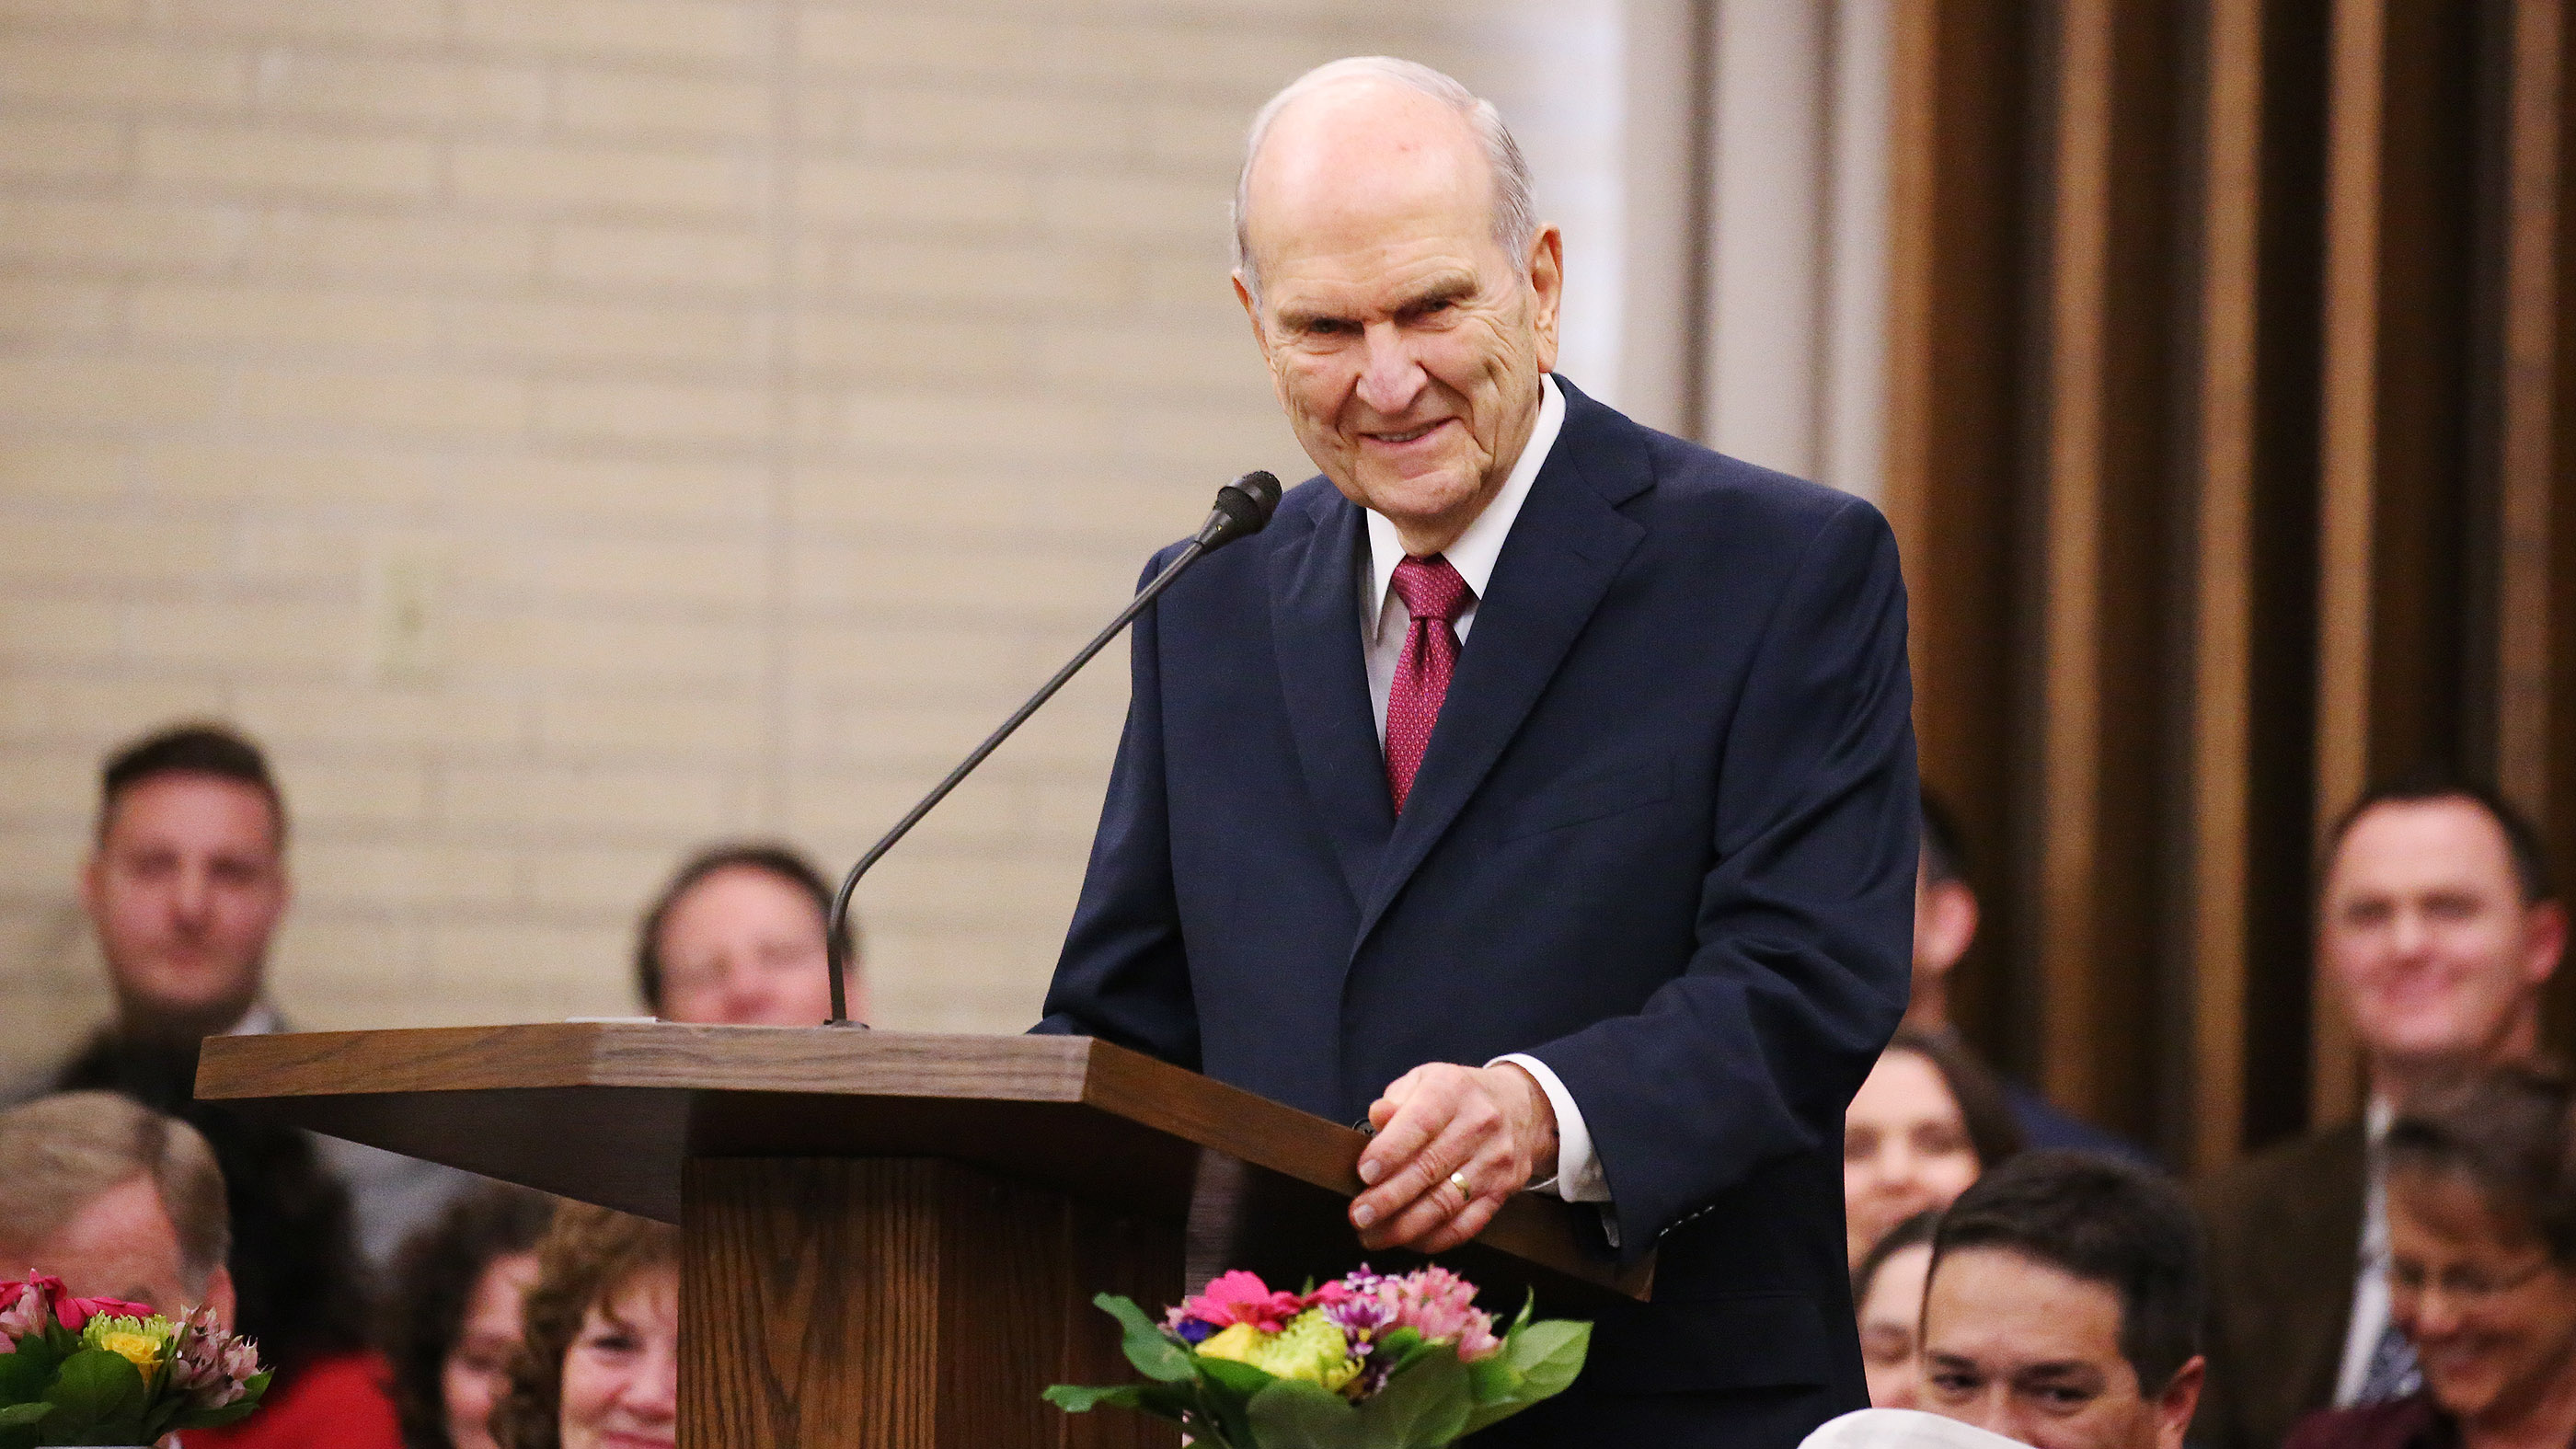 President Russell M. Nelson of The Church of Jesus Christ of Latter-day Saints speaks in Chico, California, on Sunday, Jan. 13, 2019, two months after the Camp Fire destroyed more than 18,000 homes and businesses.